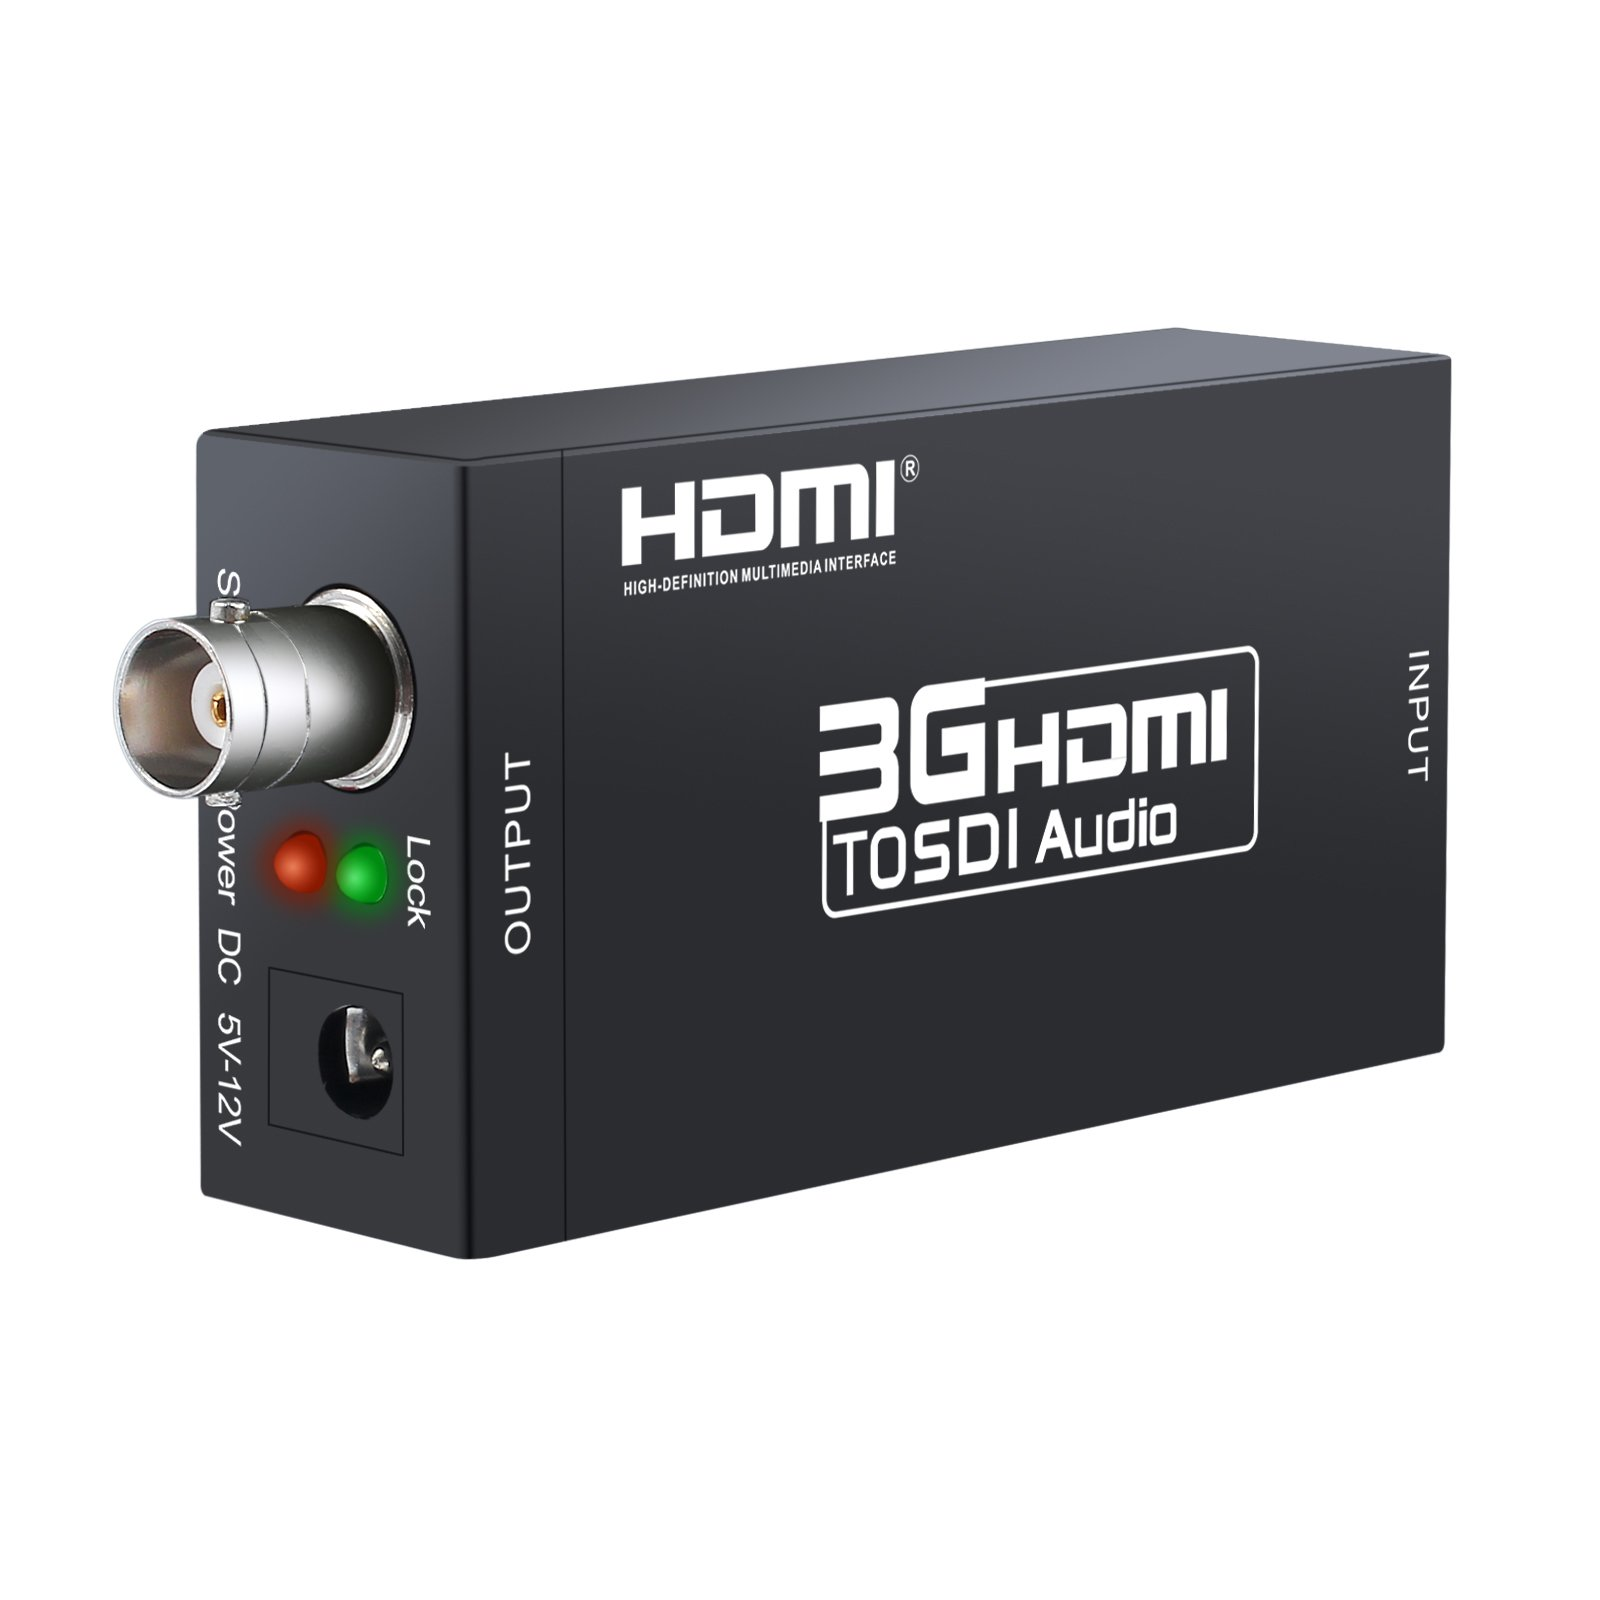 ESYNIC HDMI to SDI Converter Adapter Mini 3G HDMI SDI Adapter HDMI to SDI Video Audio Converter 1080P BNC SD-SDI/HD-SDI/3G-SDI for Camera Home Theater